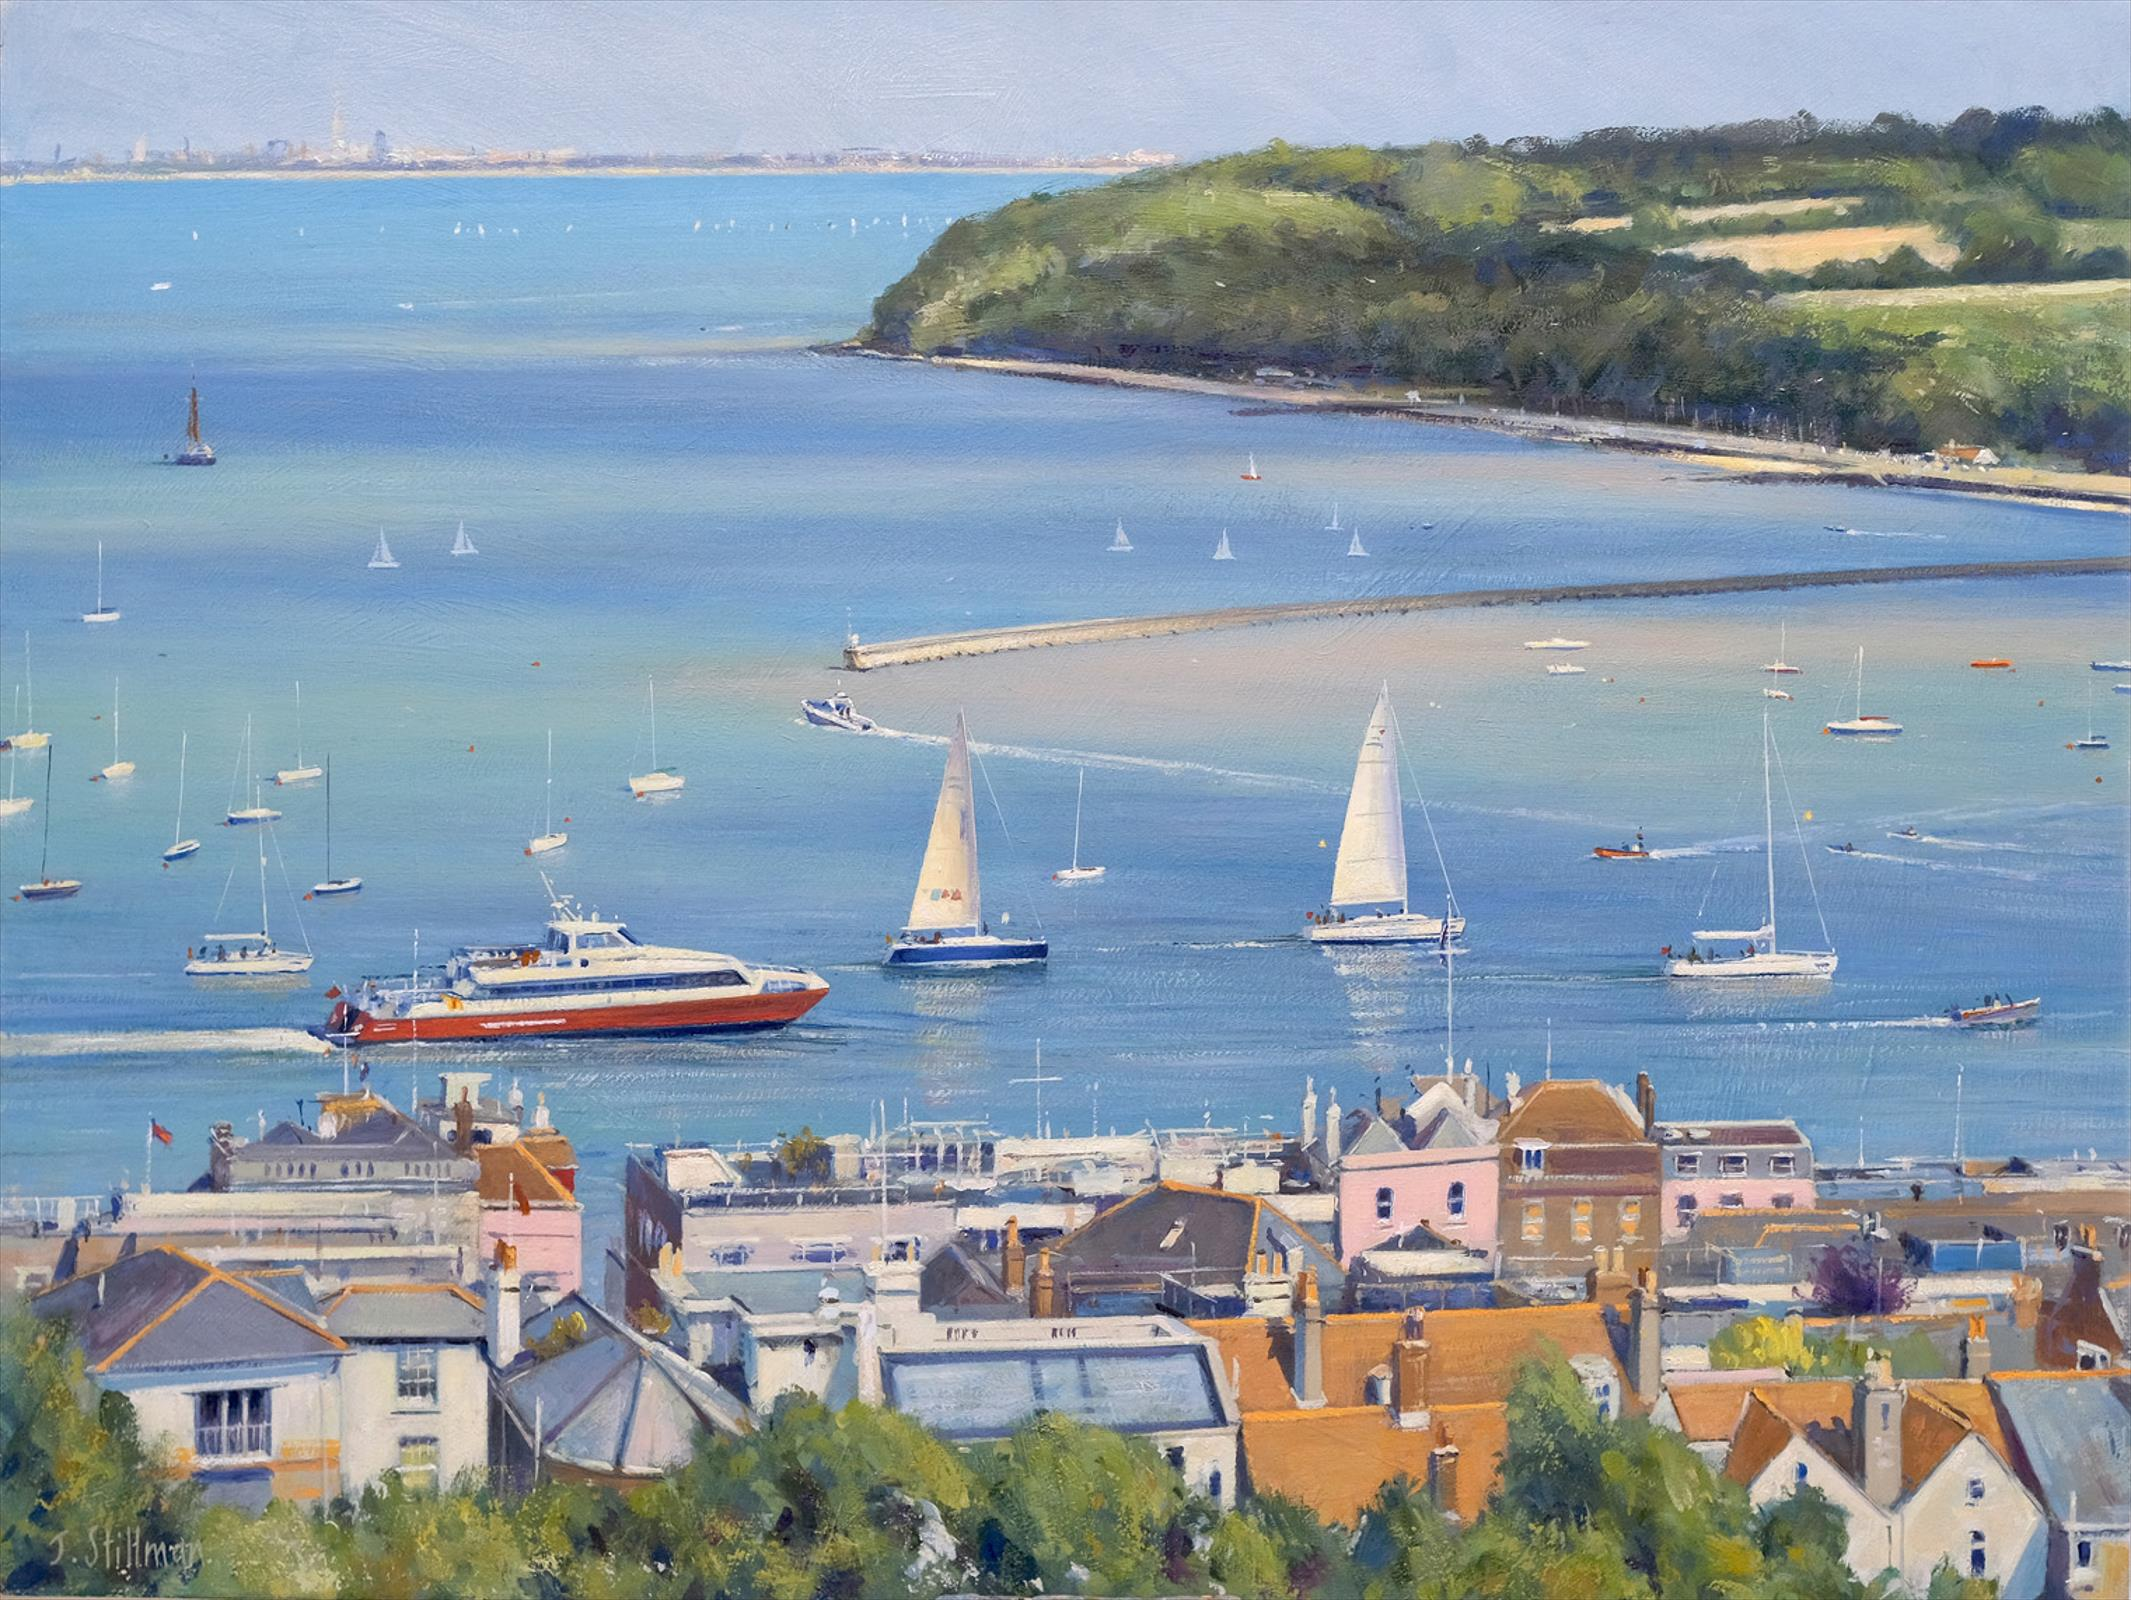 John Stillman Entrance to the Harbour cowes Isle of Wight